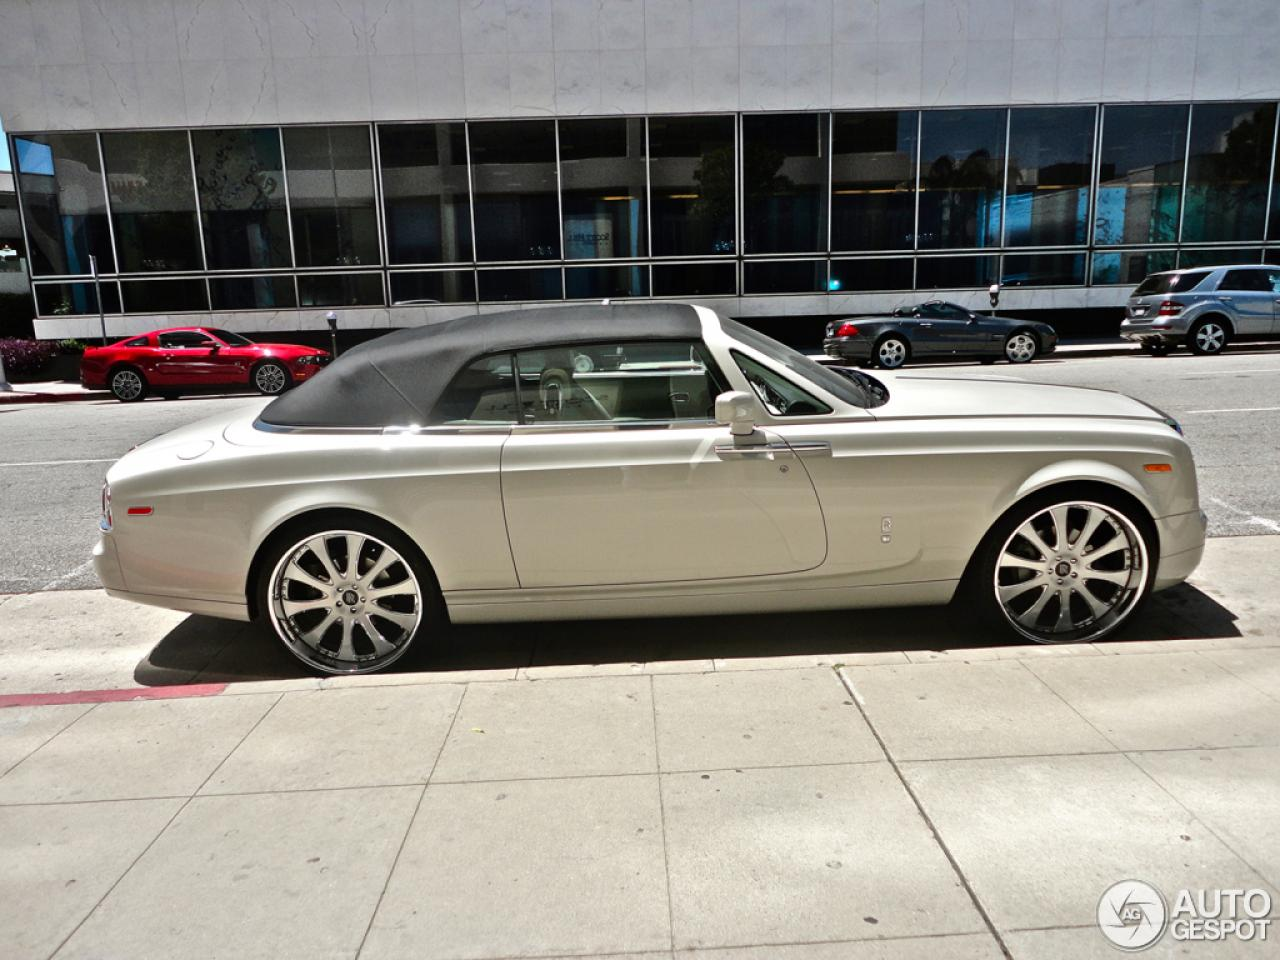 2013 rolls royce phantom drophead coupe information and photos zombiedrive. Black Bedroom Furniture Sets. Home Design Ideas